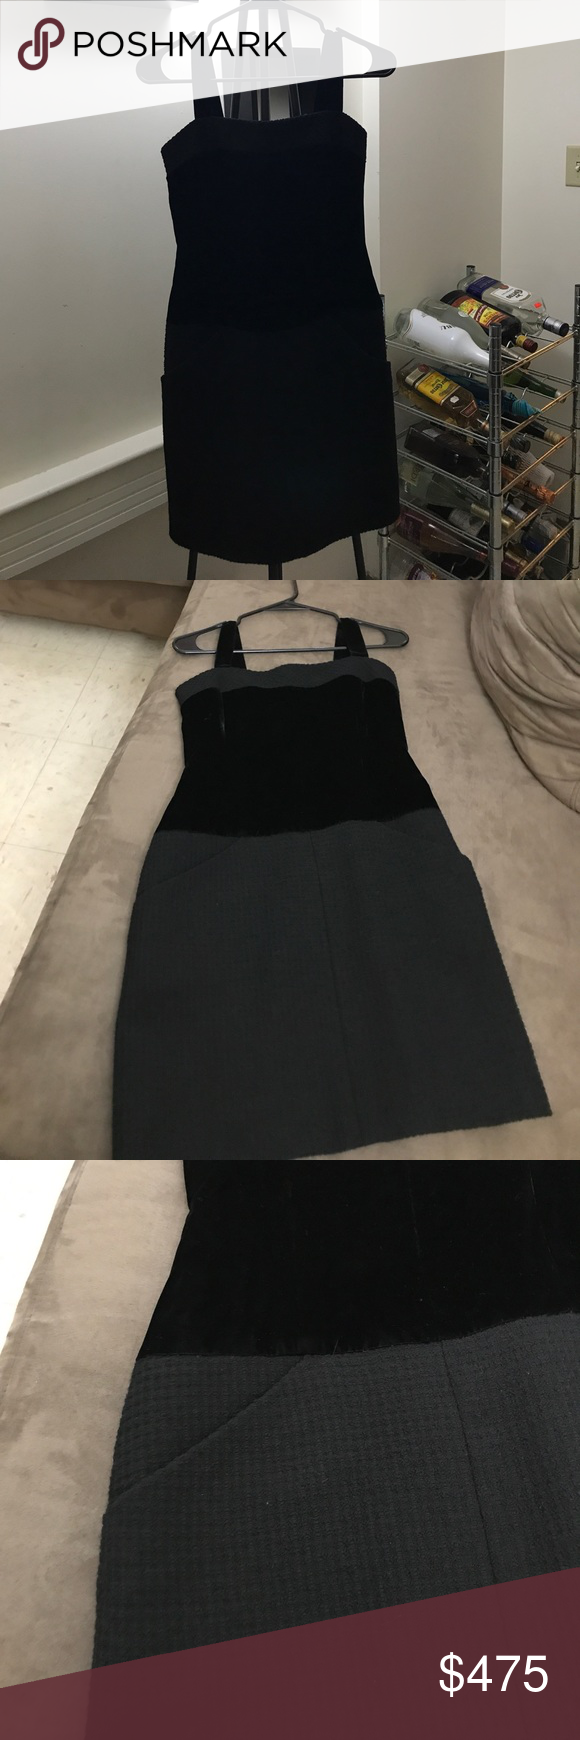 Chanel shift dress pinterest chanel dress